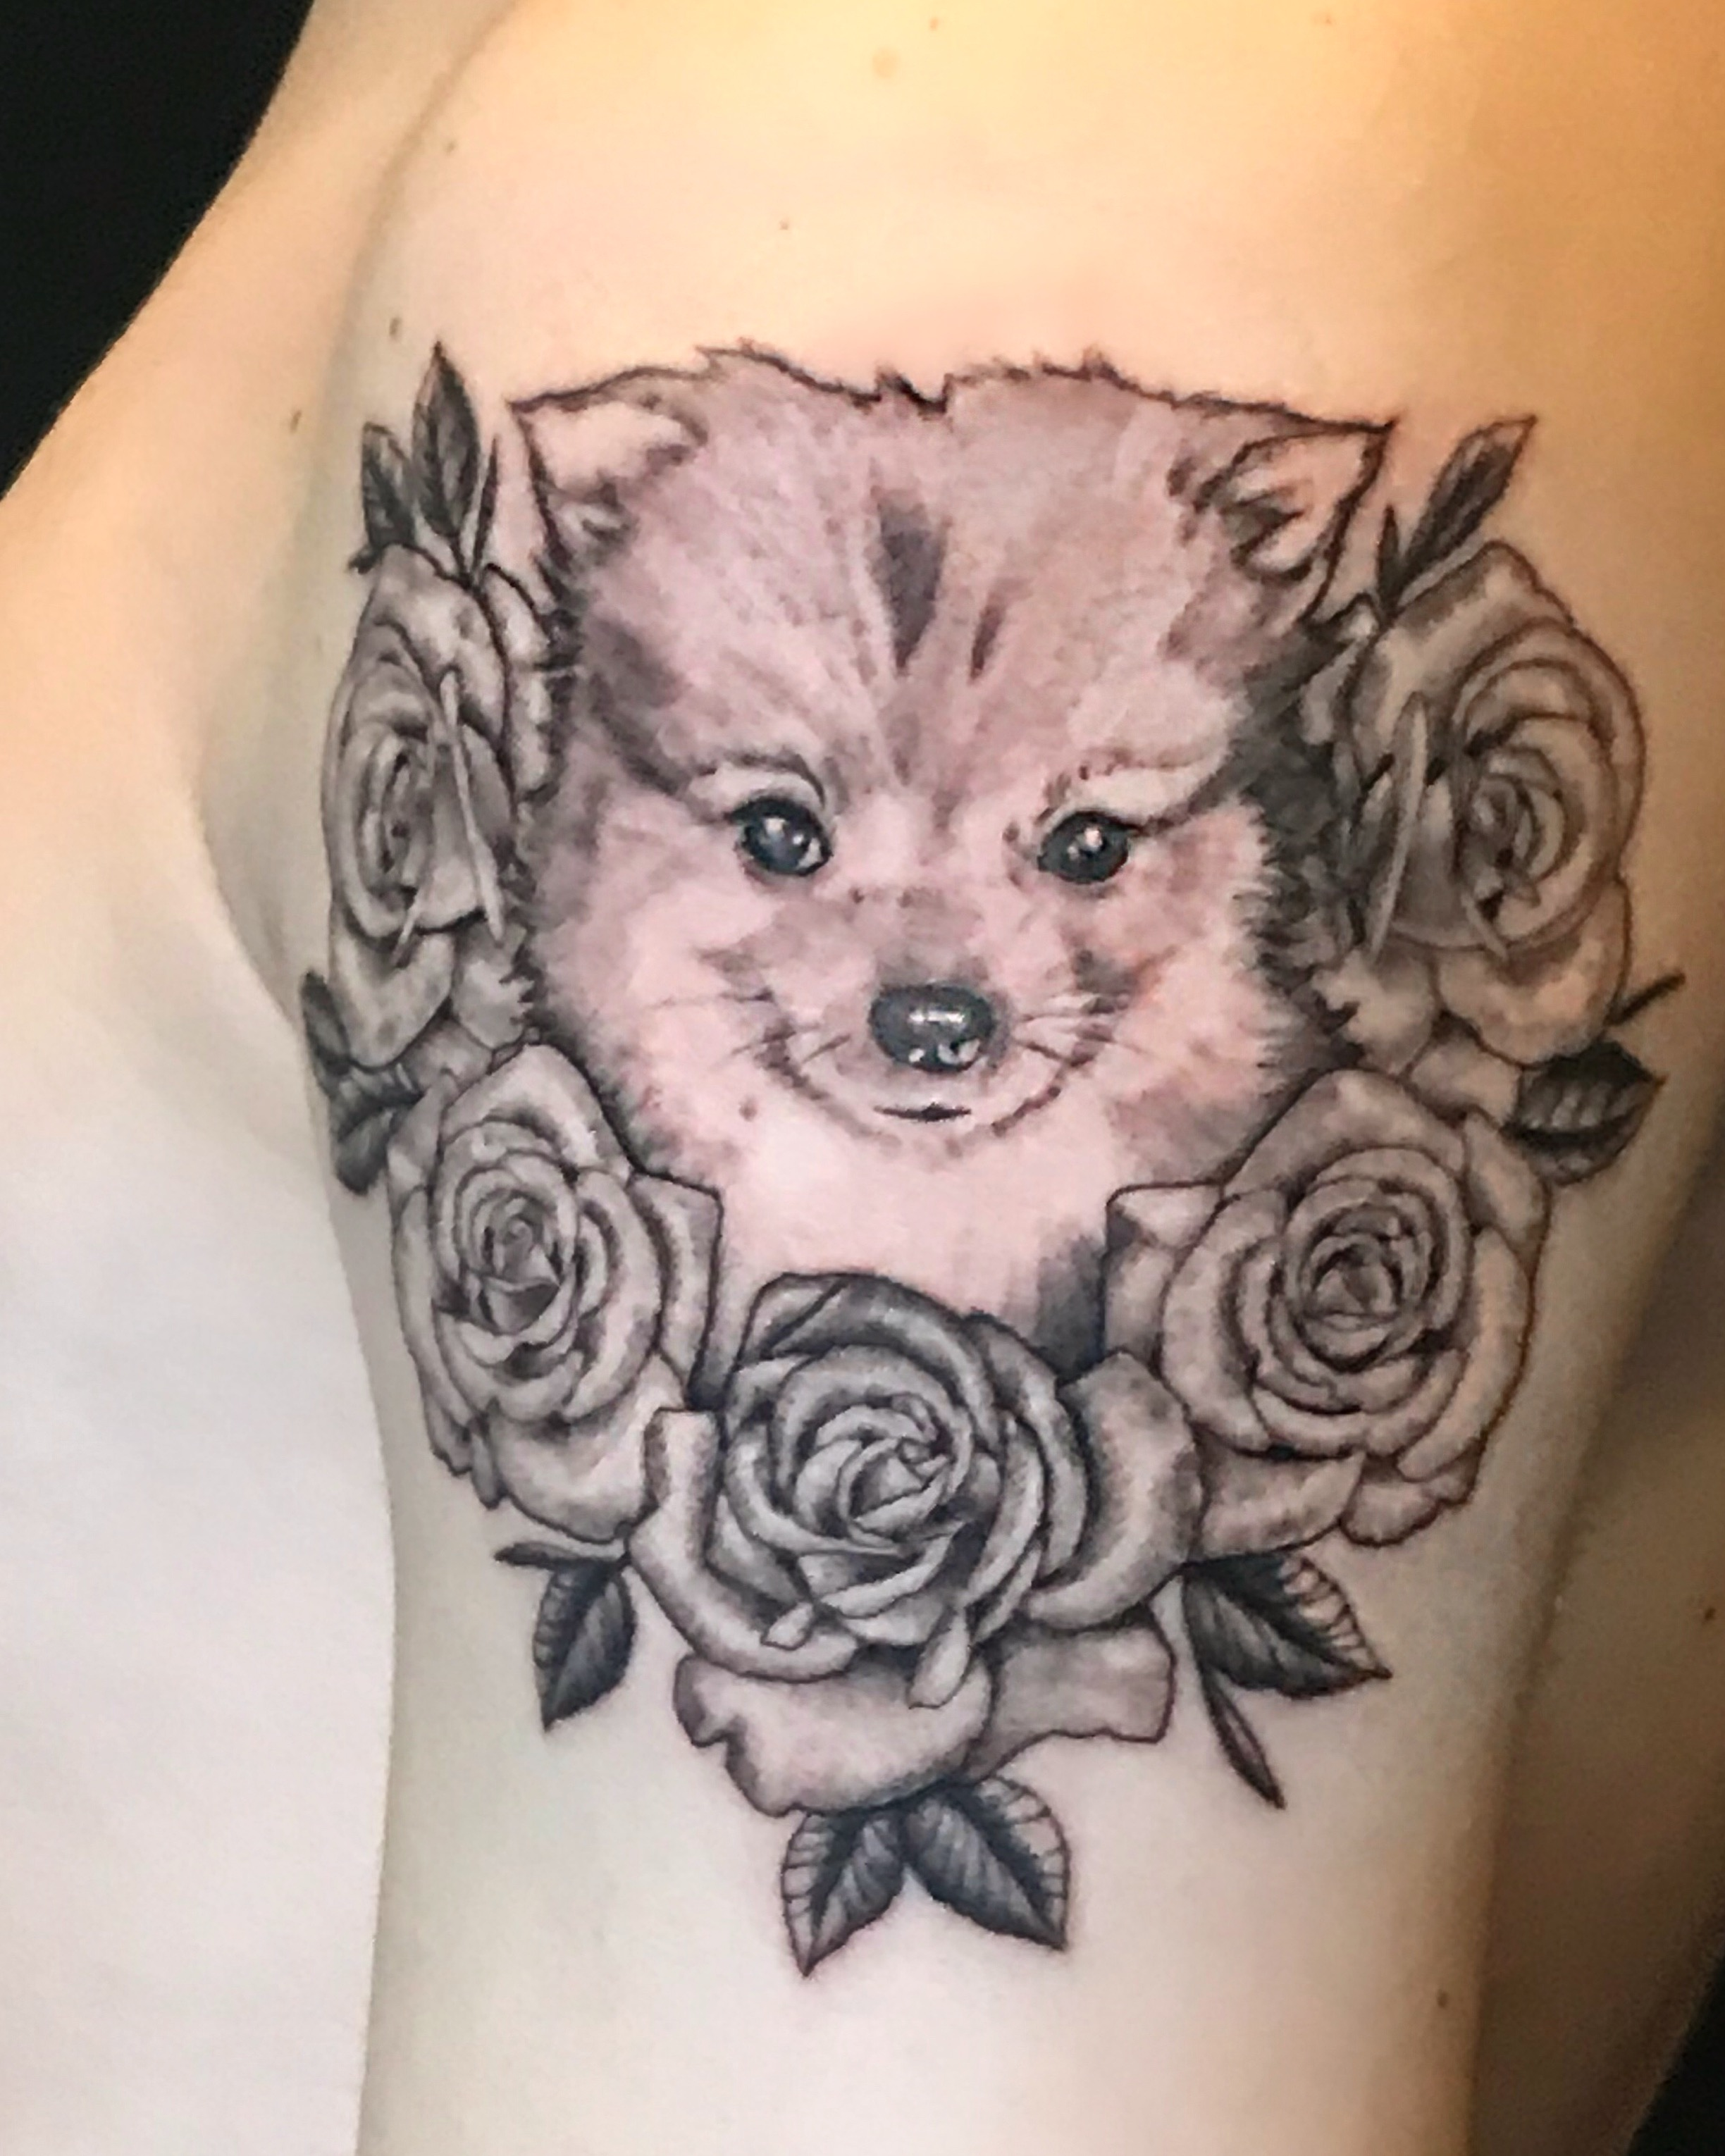 Logan Lucky Ford's Tattoo